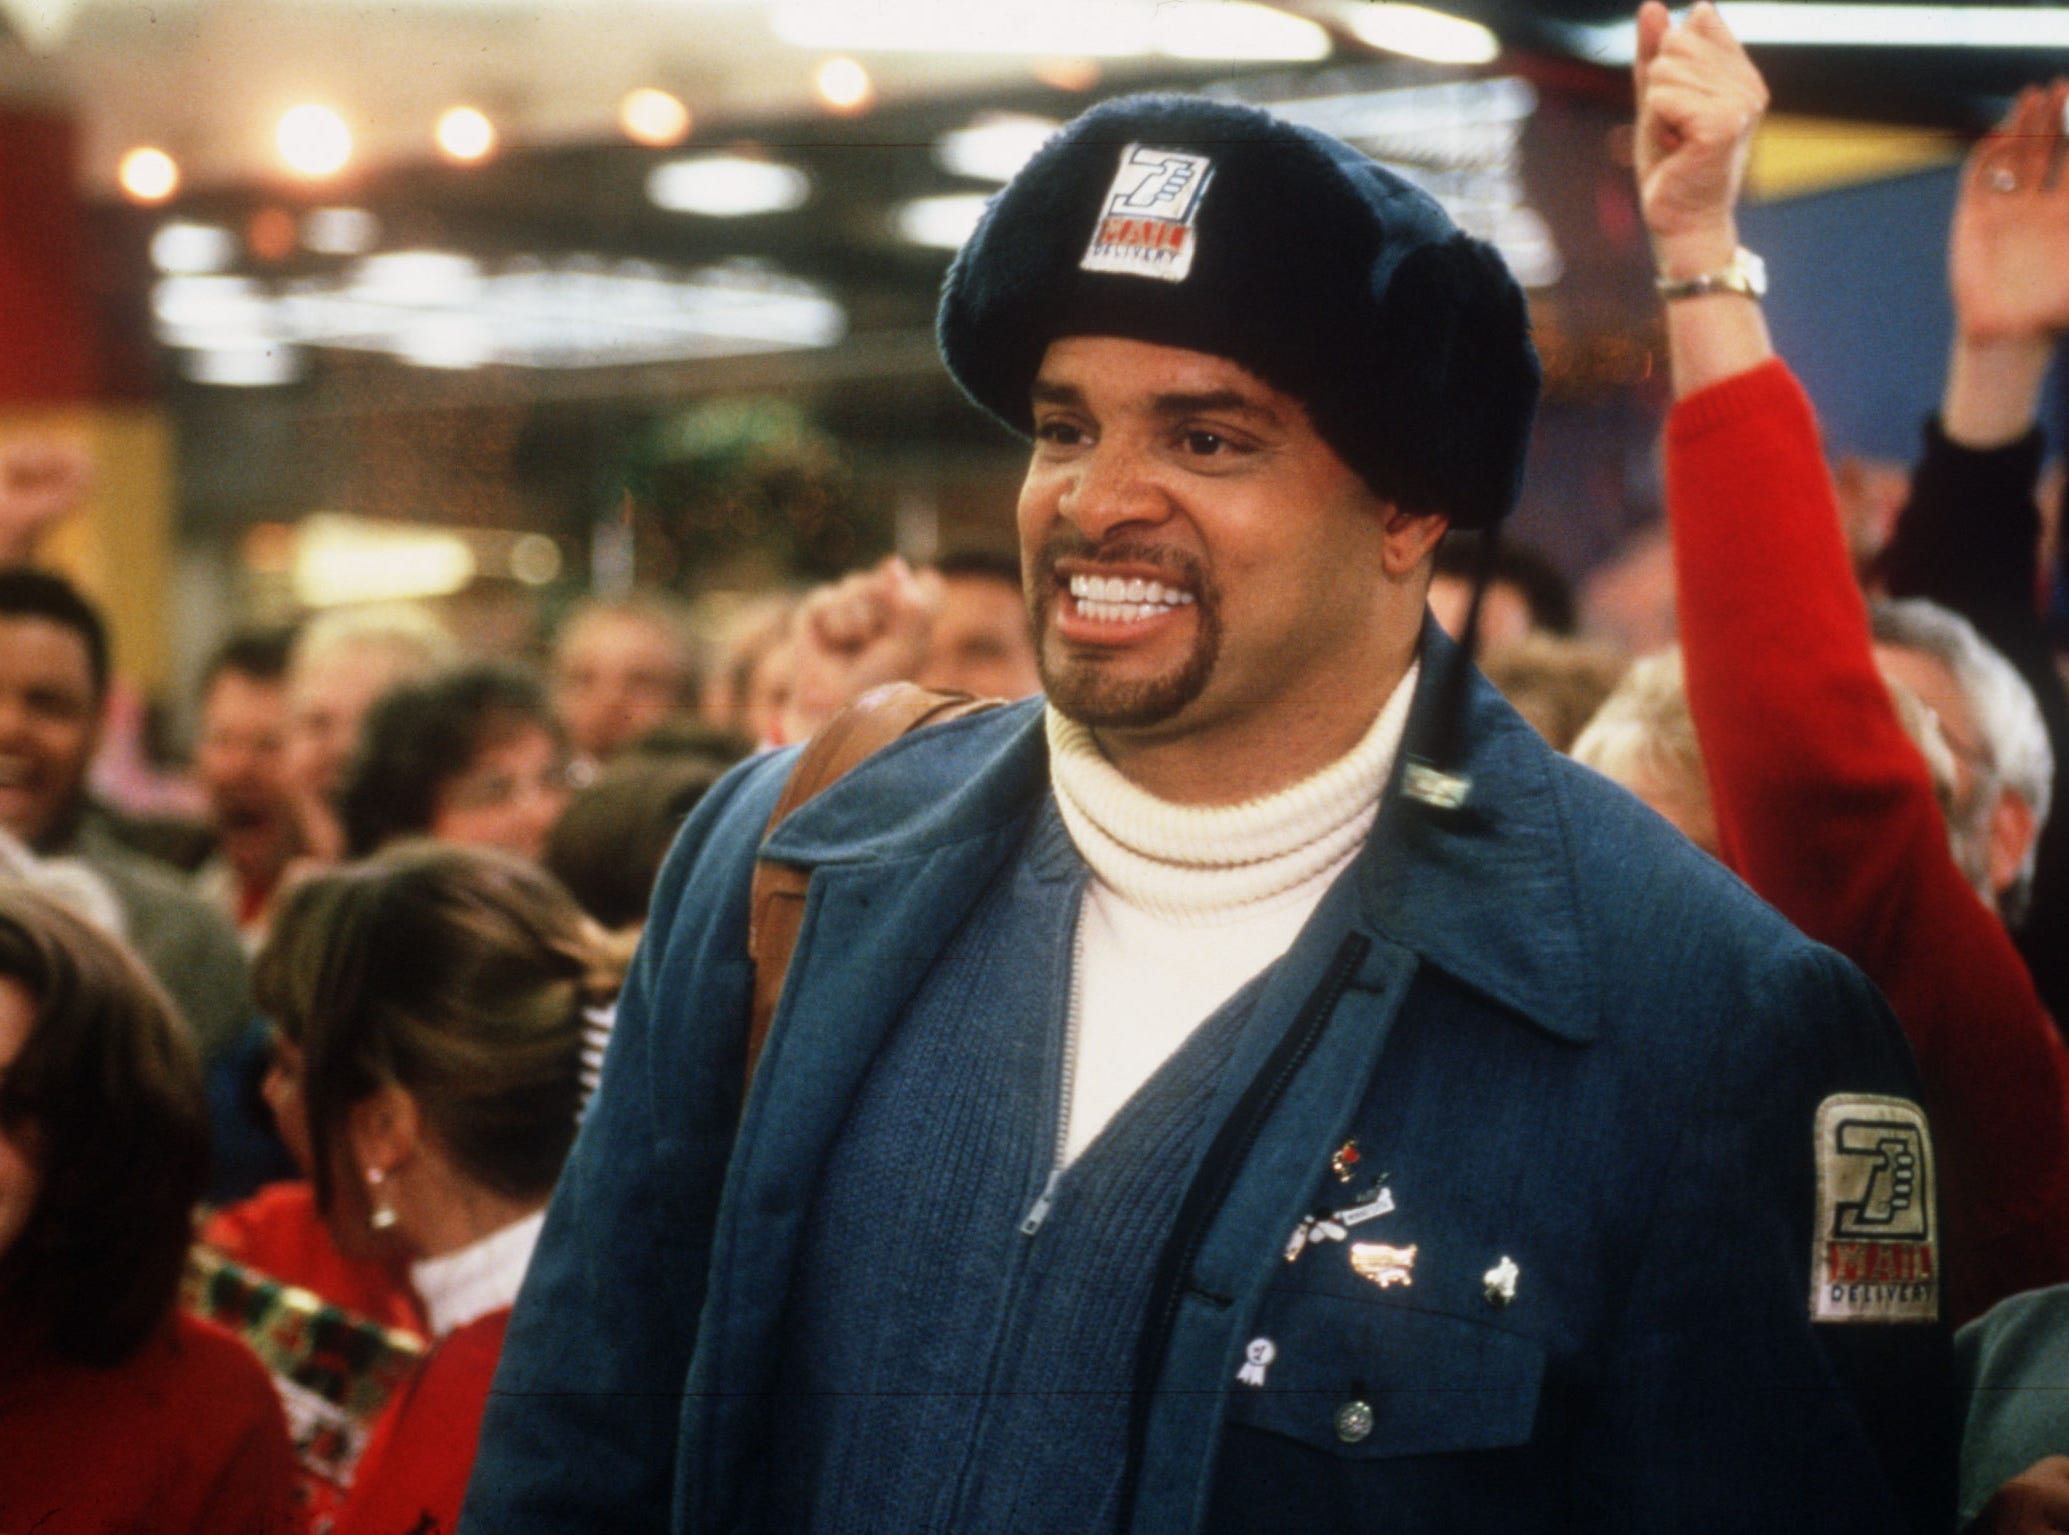 DATE TAKEN: 1996--- Sinbad from Jingle All The Way ORG XMIT: UT34652